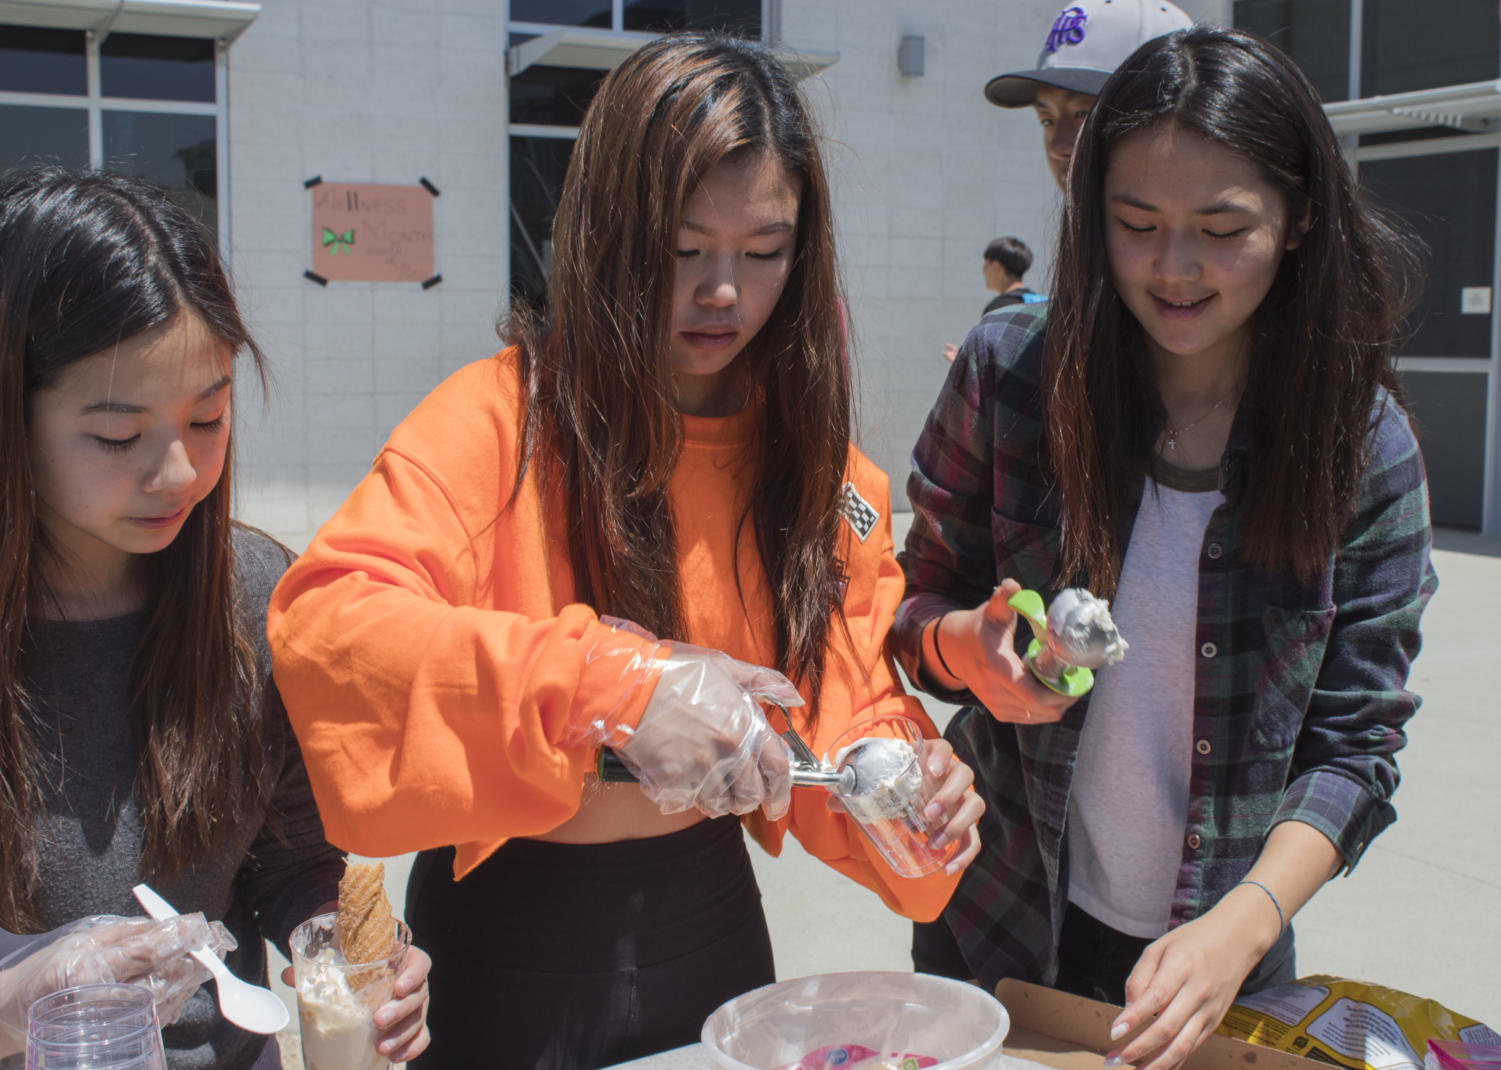 Club members and sophomores Annika Lai, Miranda Wang and Lauren Hwang scoop out ice cream and churros in return for tickets for Create the Change Club. Hwang founded the club in order to help families in Peru, and plans on using the money earned from Club-a-Palooza to purchase lotions, vitamins and other materials to help the children in need.